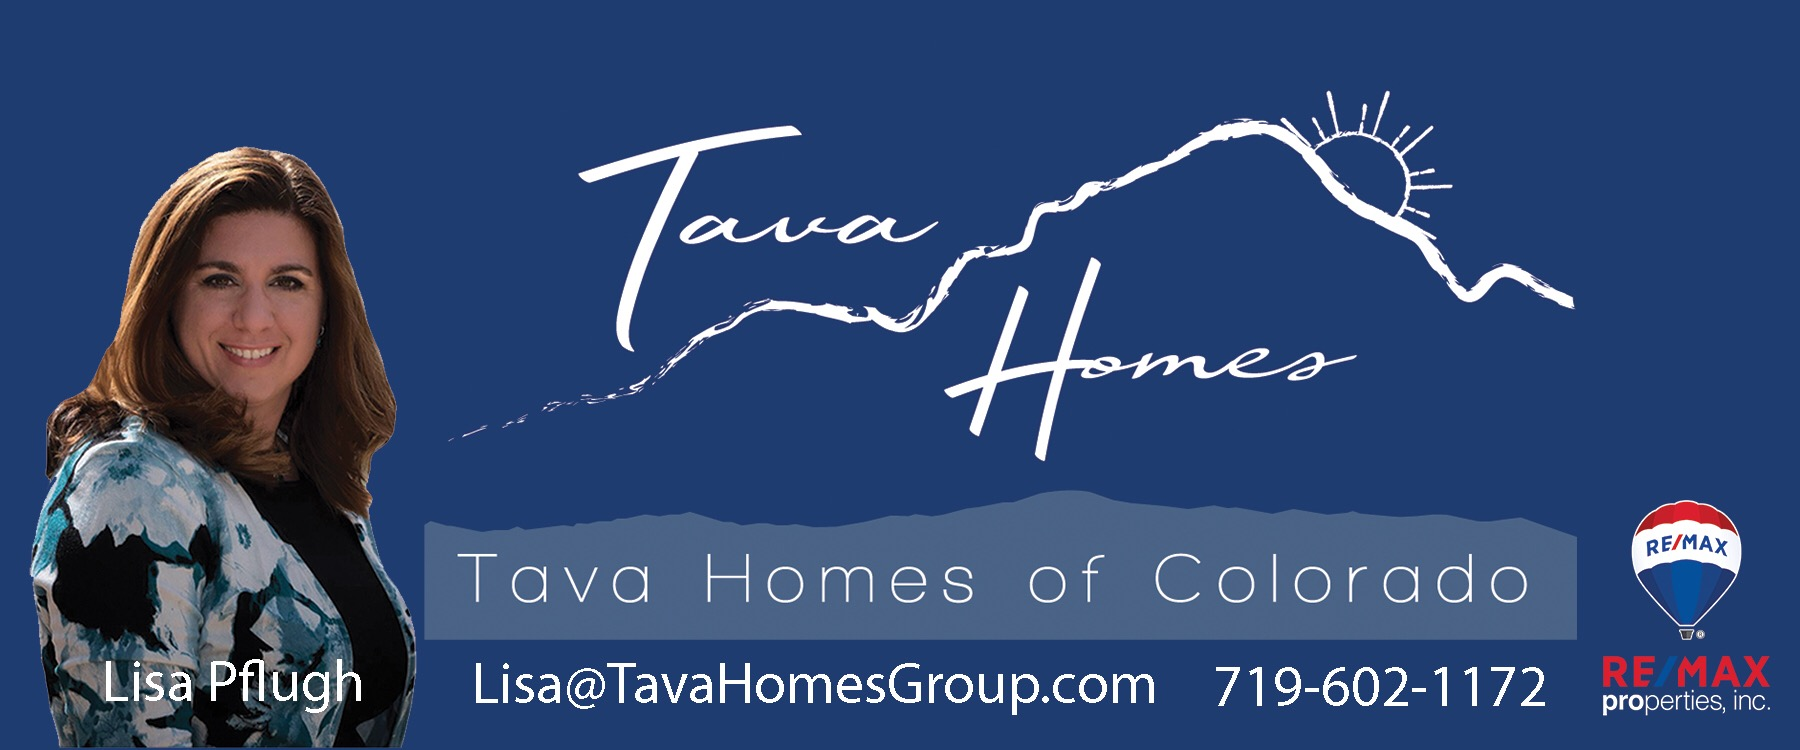 Tava Homes of Colorado